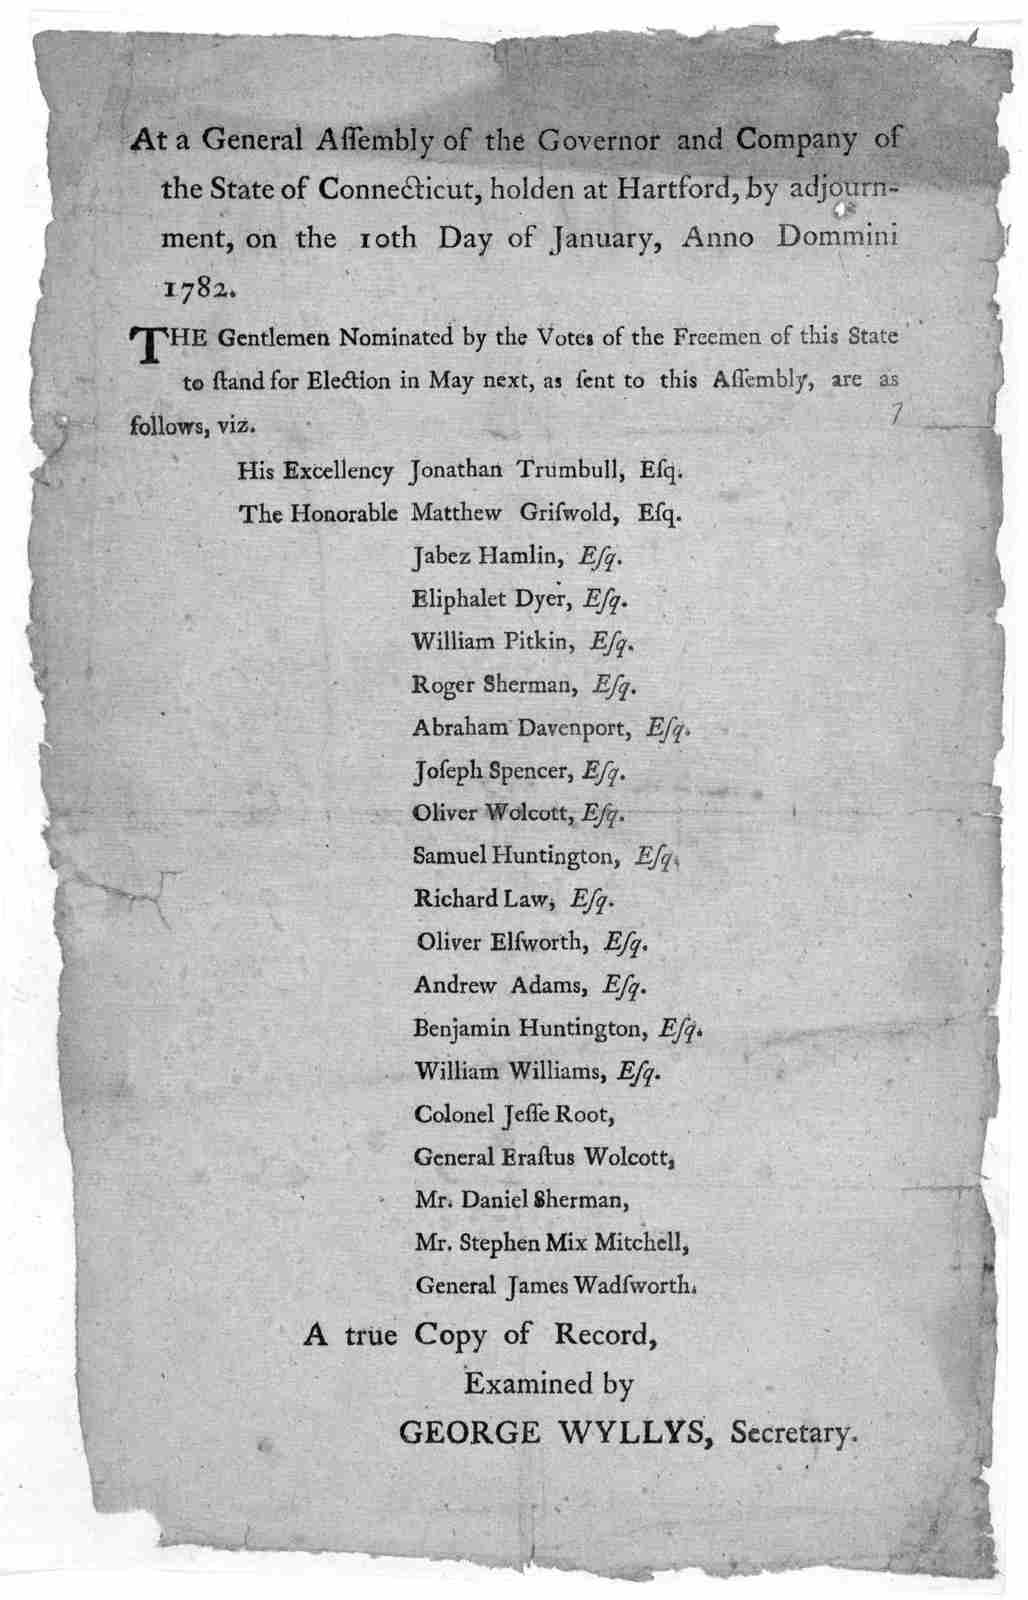 At a General Assembly of the Governor and Company of the State of Connecticut, holden at Hartford, by adjournment, on the 10th day of January, Anno Domini 1782. The Gentlemen nominated by the votes of the freemen of this State to stand for elect